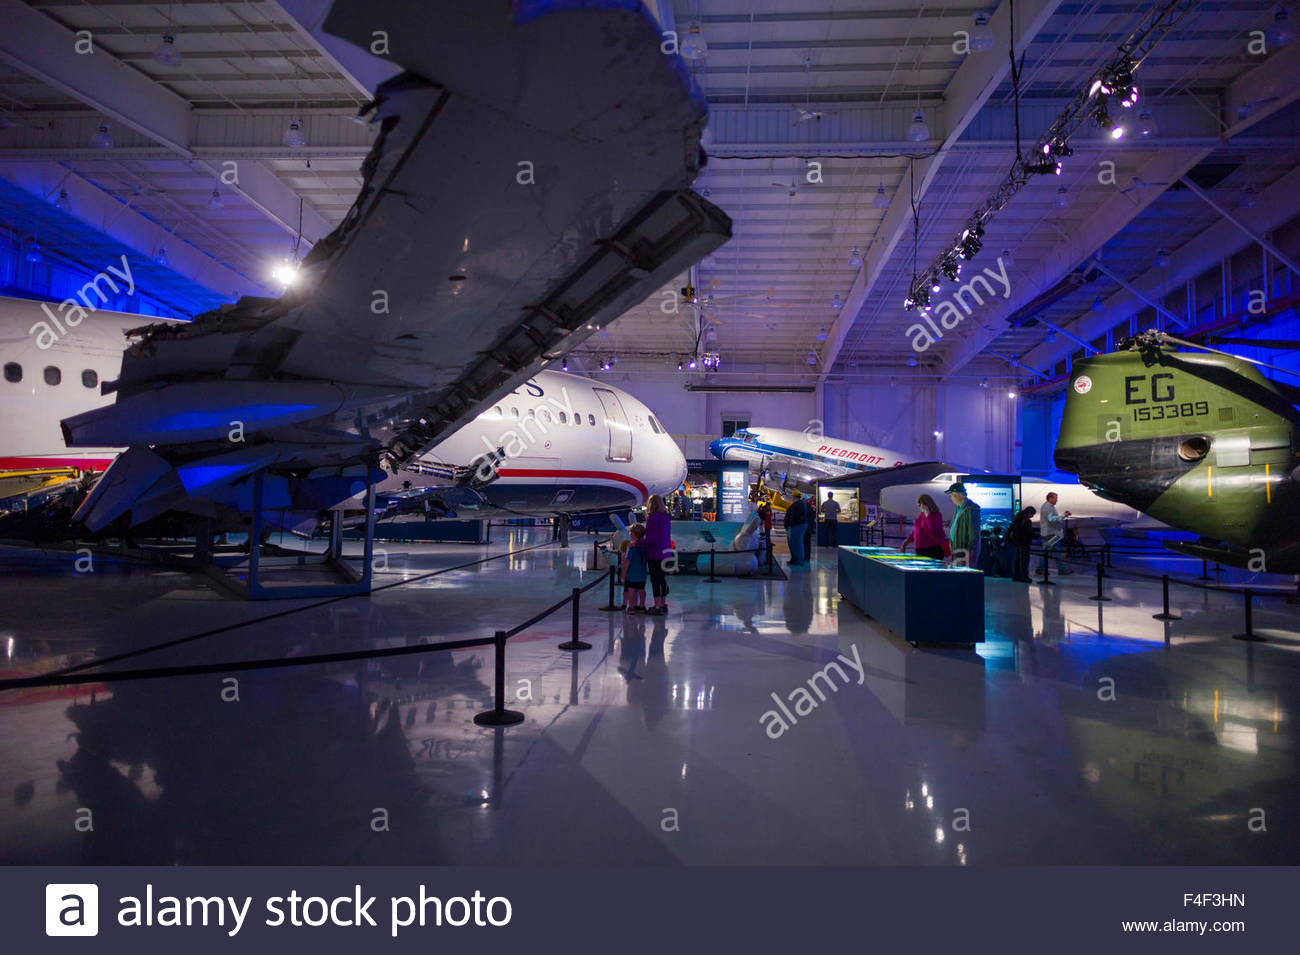 North Carolina, Charlotte, Carolina's Aviation Museum, interior, display for US Airways Fight 1549 that crash - Stock Image